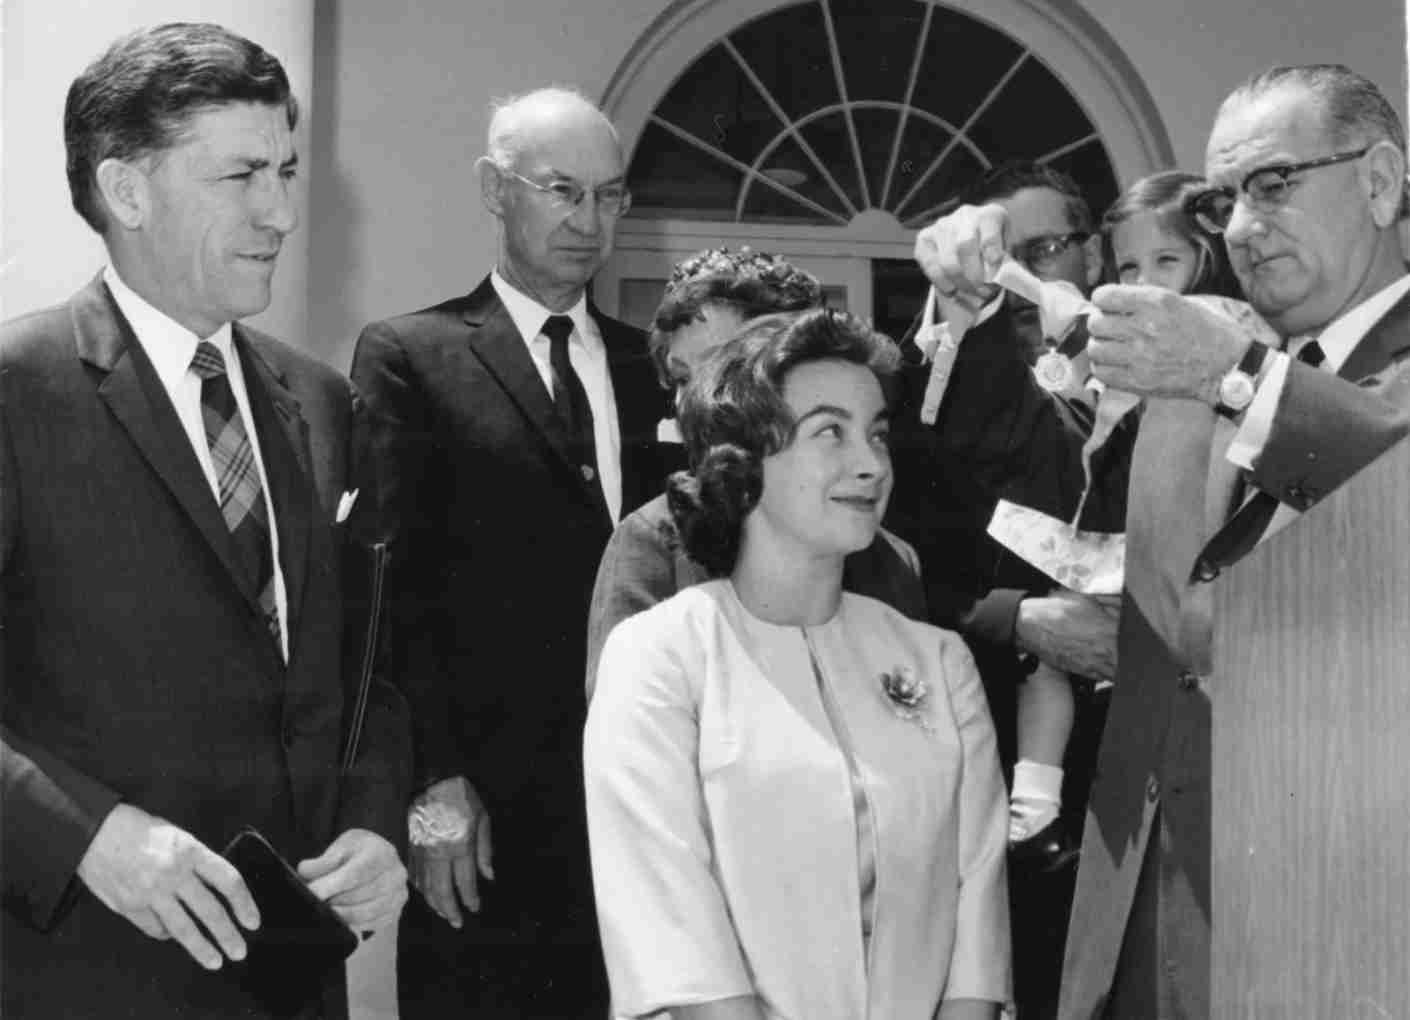 Outside the White House, American aviator Jerrie Mock (1925 - 2014) (center) smiles as US President Lyndon B Johnson presents her with an FAA award, Washington DC, May 4, 1964. The award was to commemorate Mock